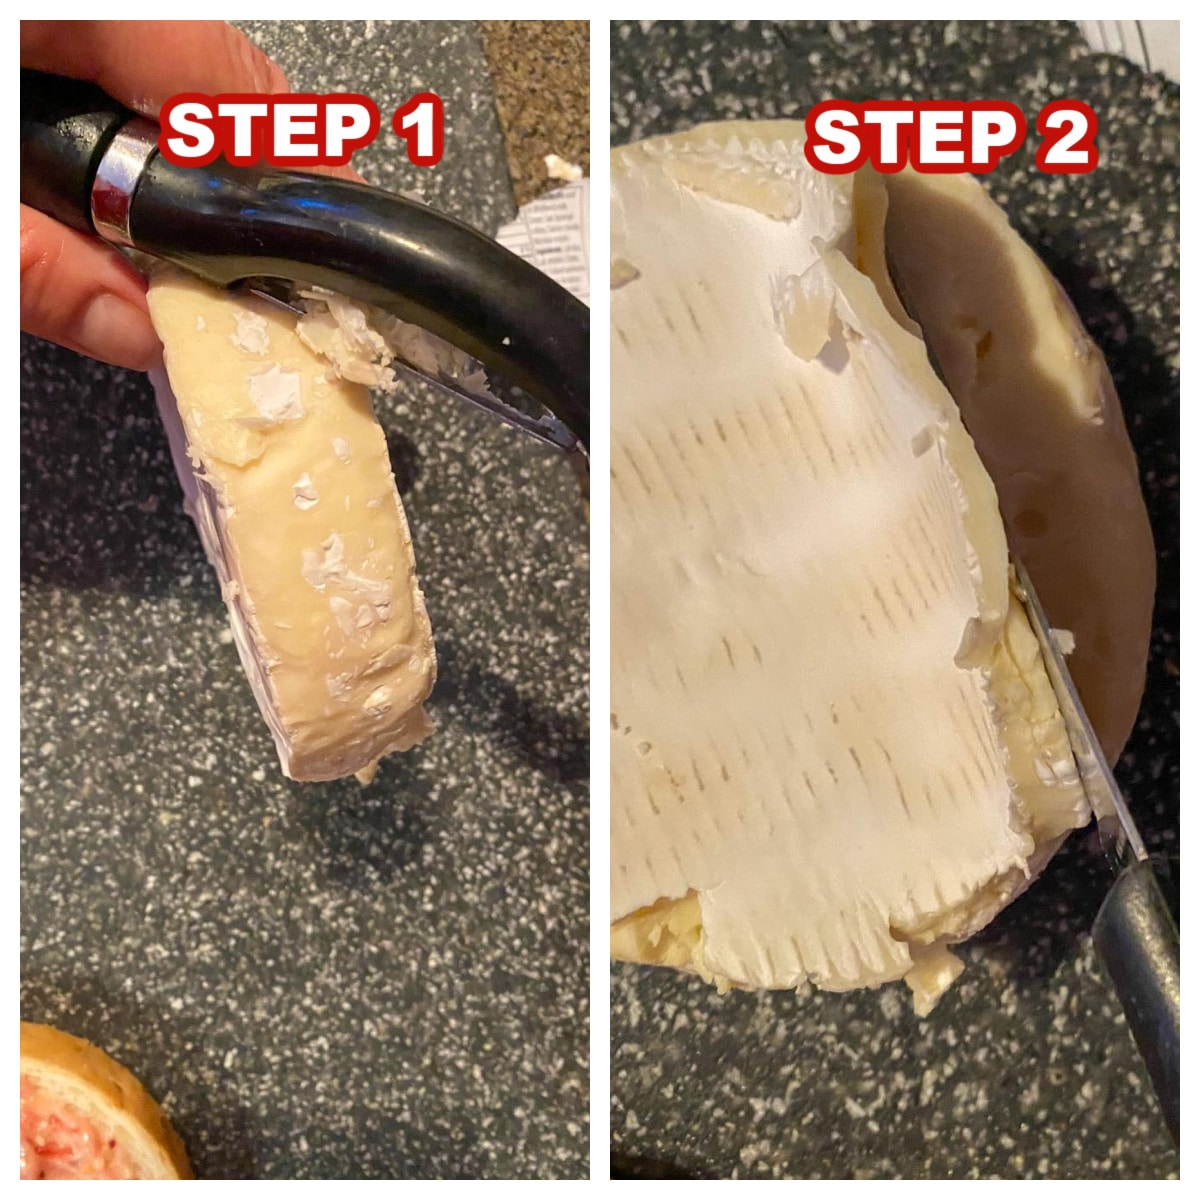 2 photo collage showing how to remove rind from Brie cheese